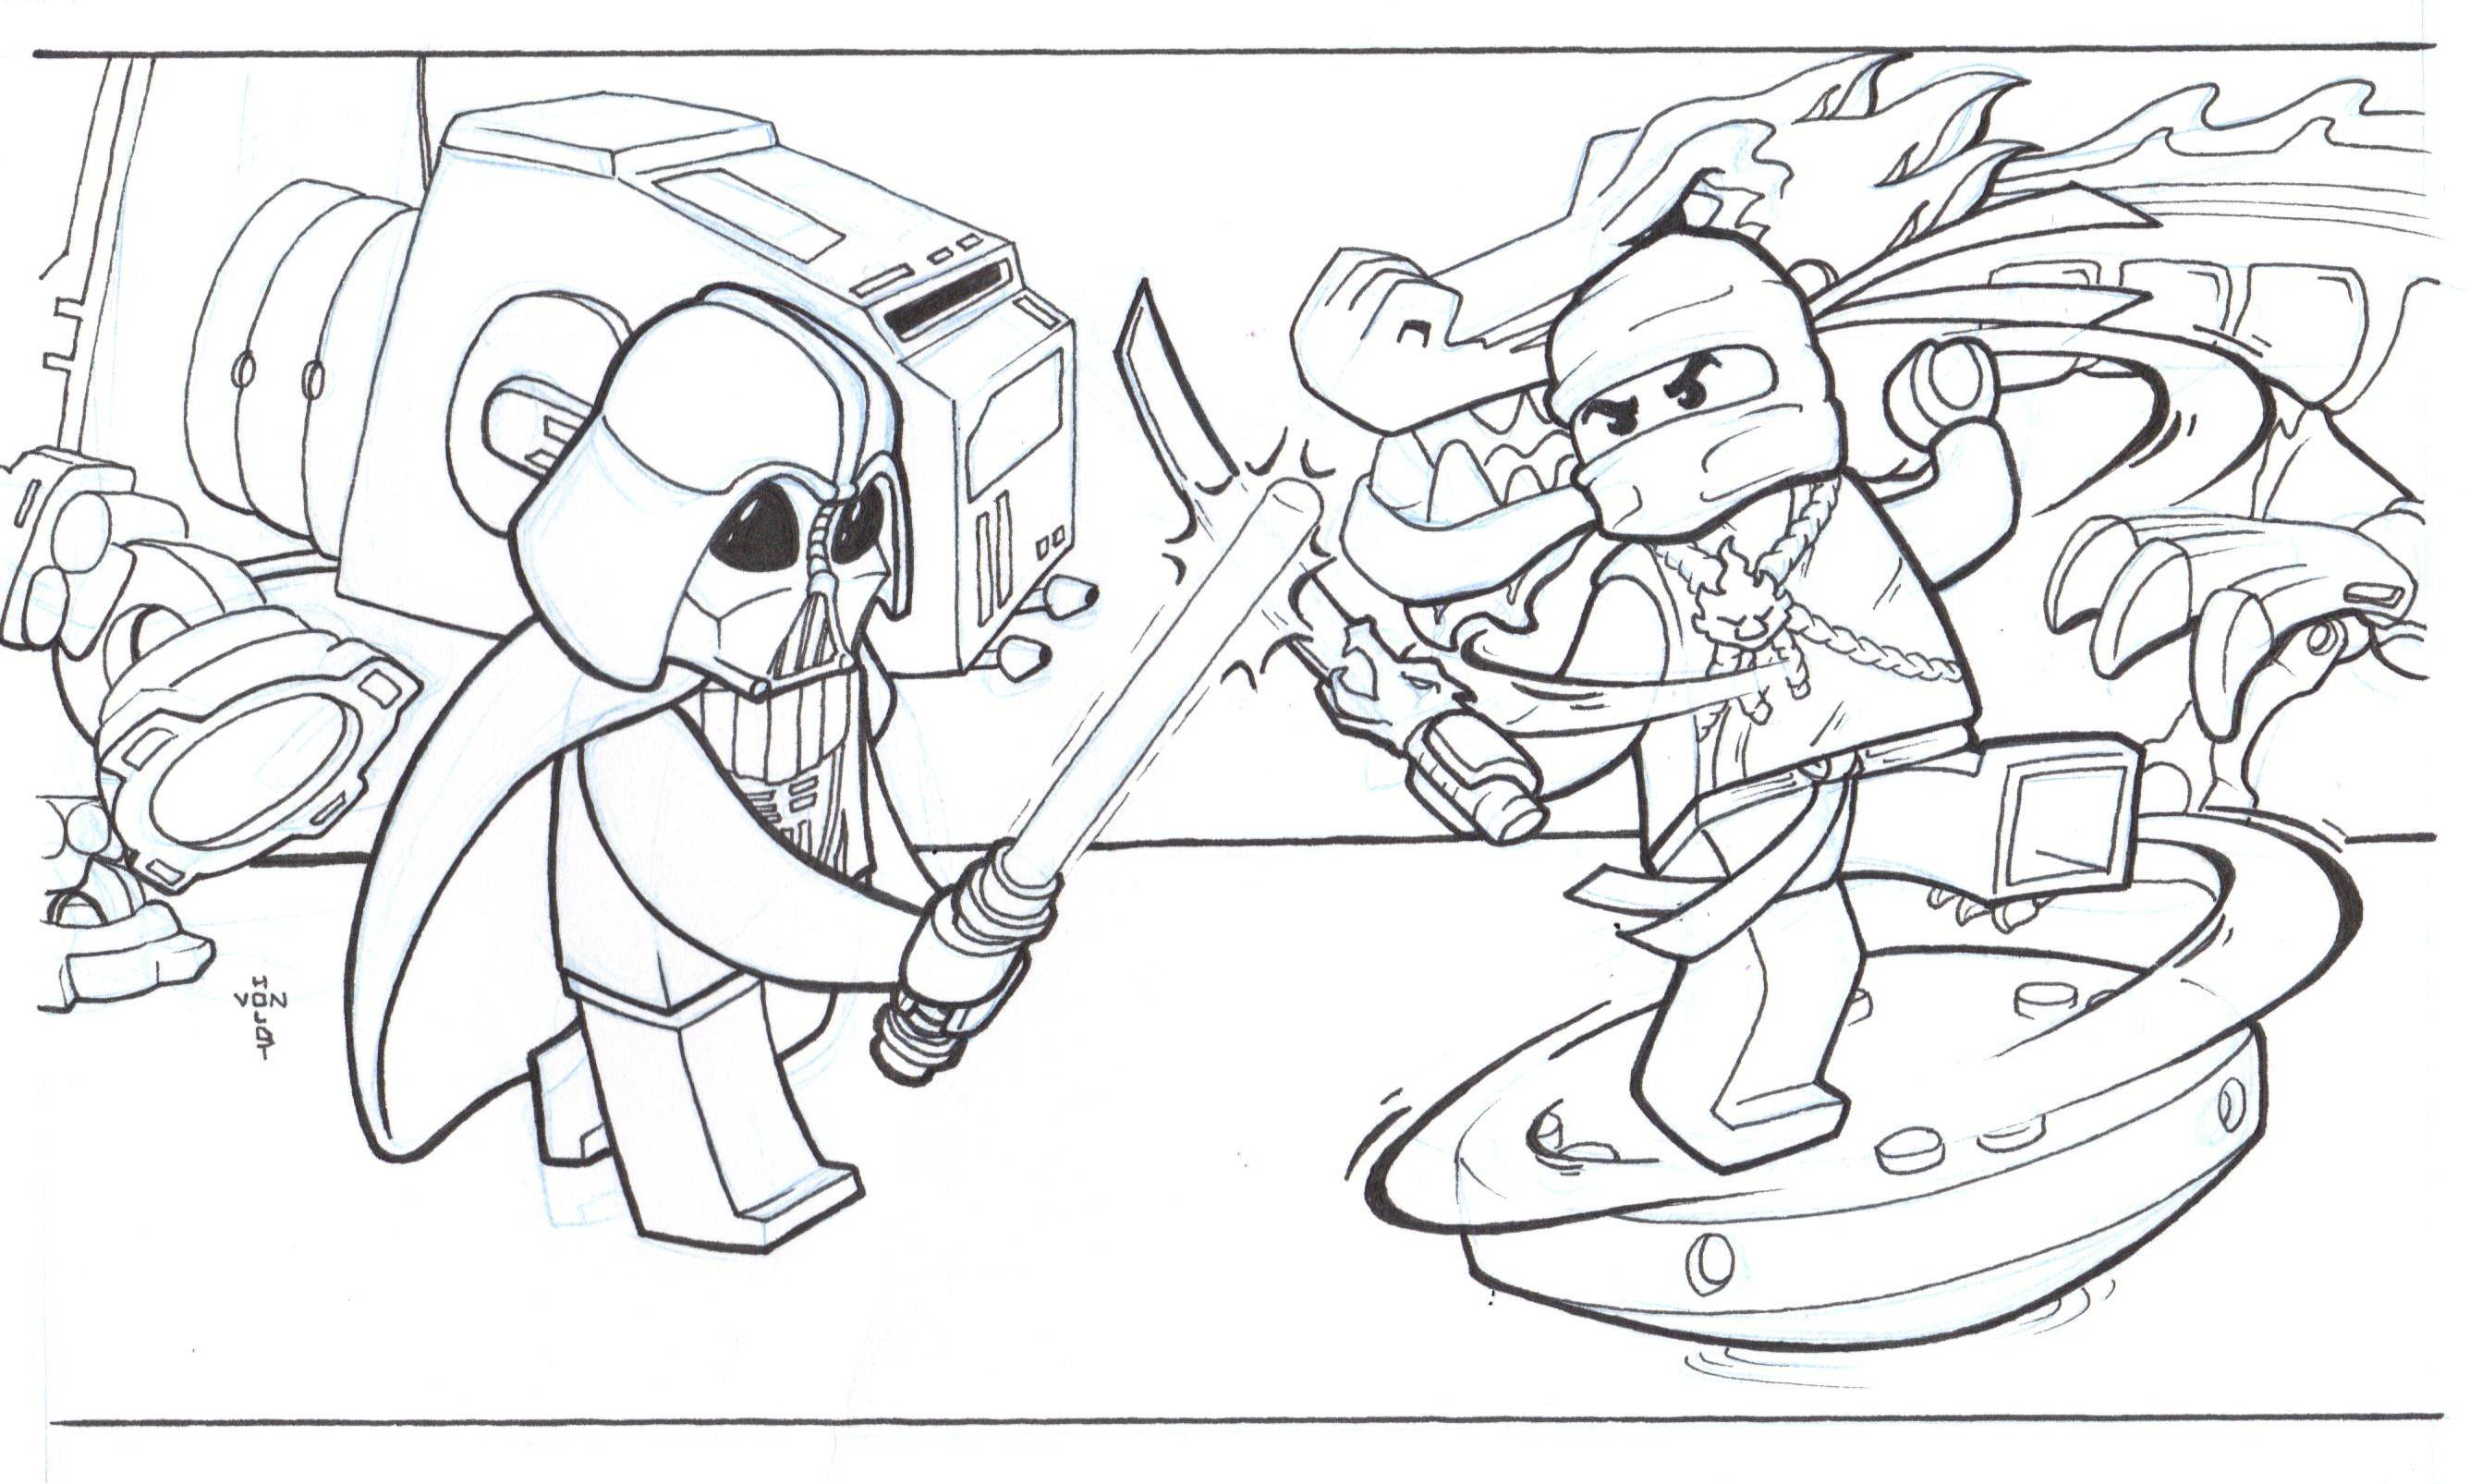 Coloring pages ninjago - Coloring Pages Lego Ninjago